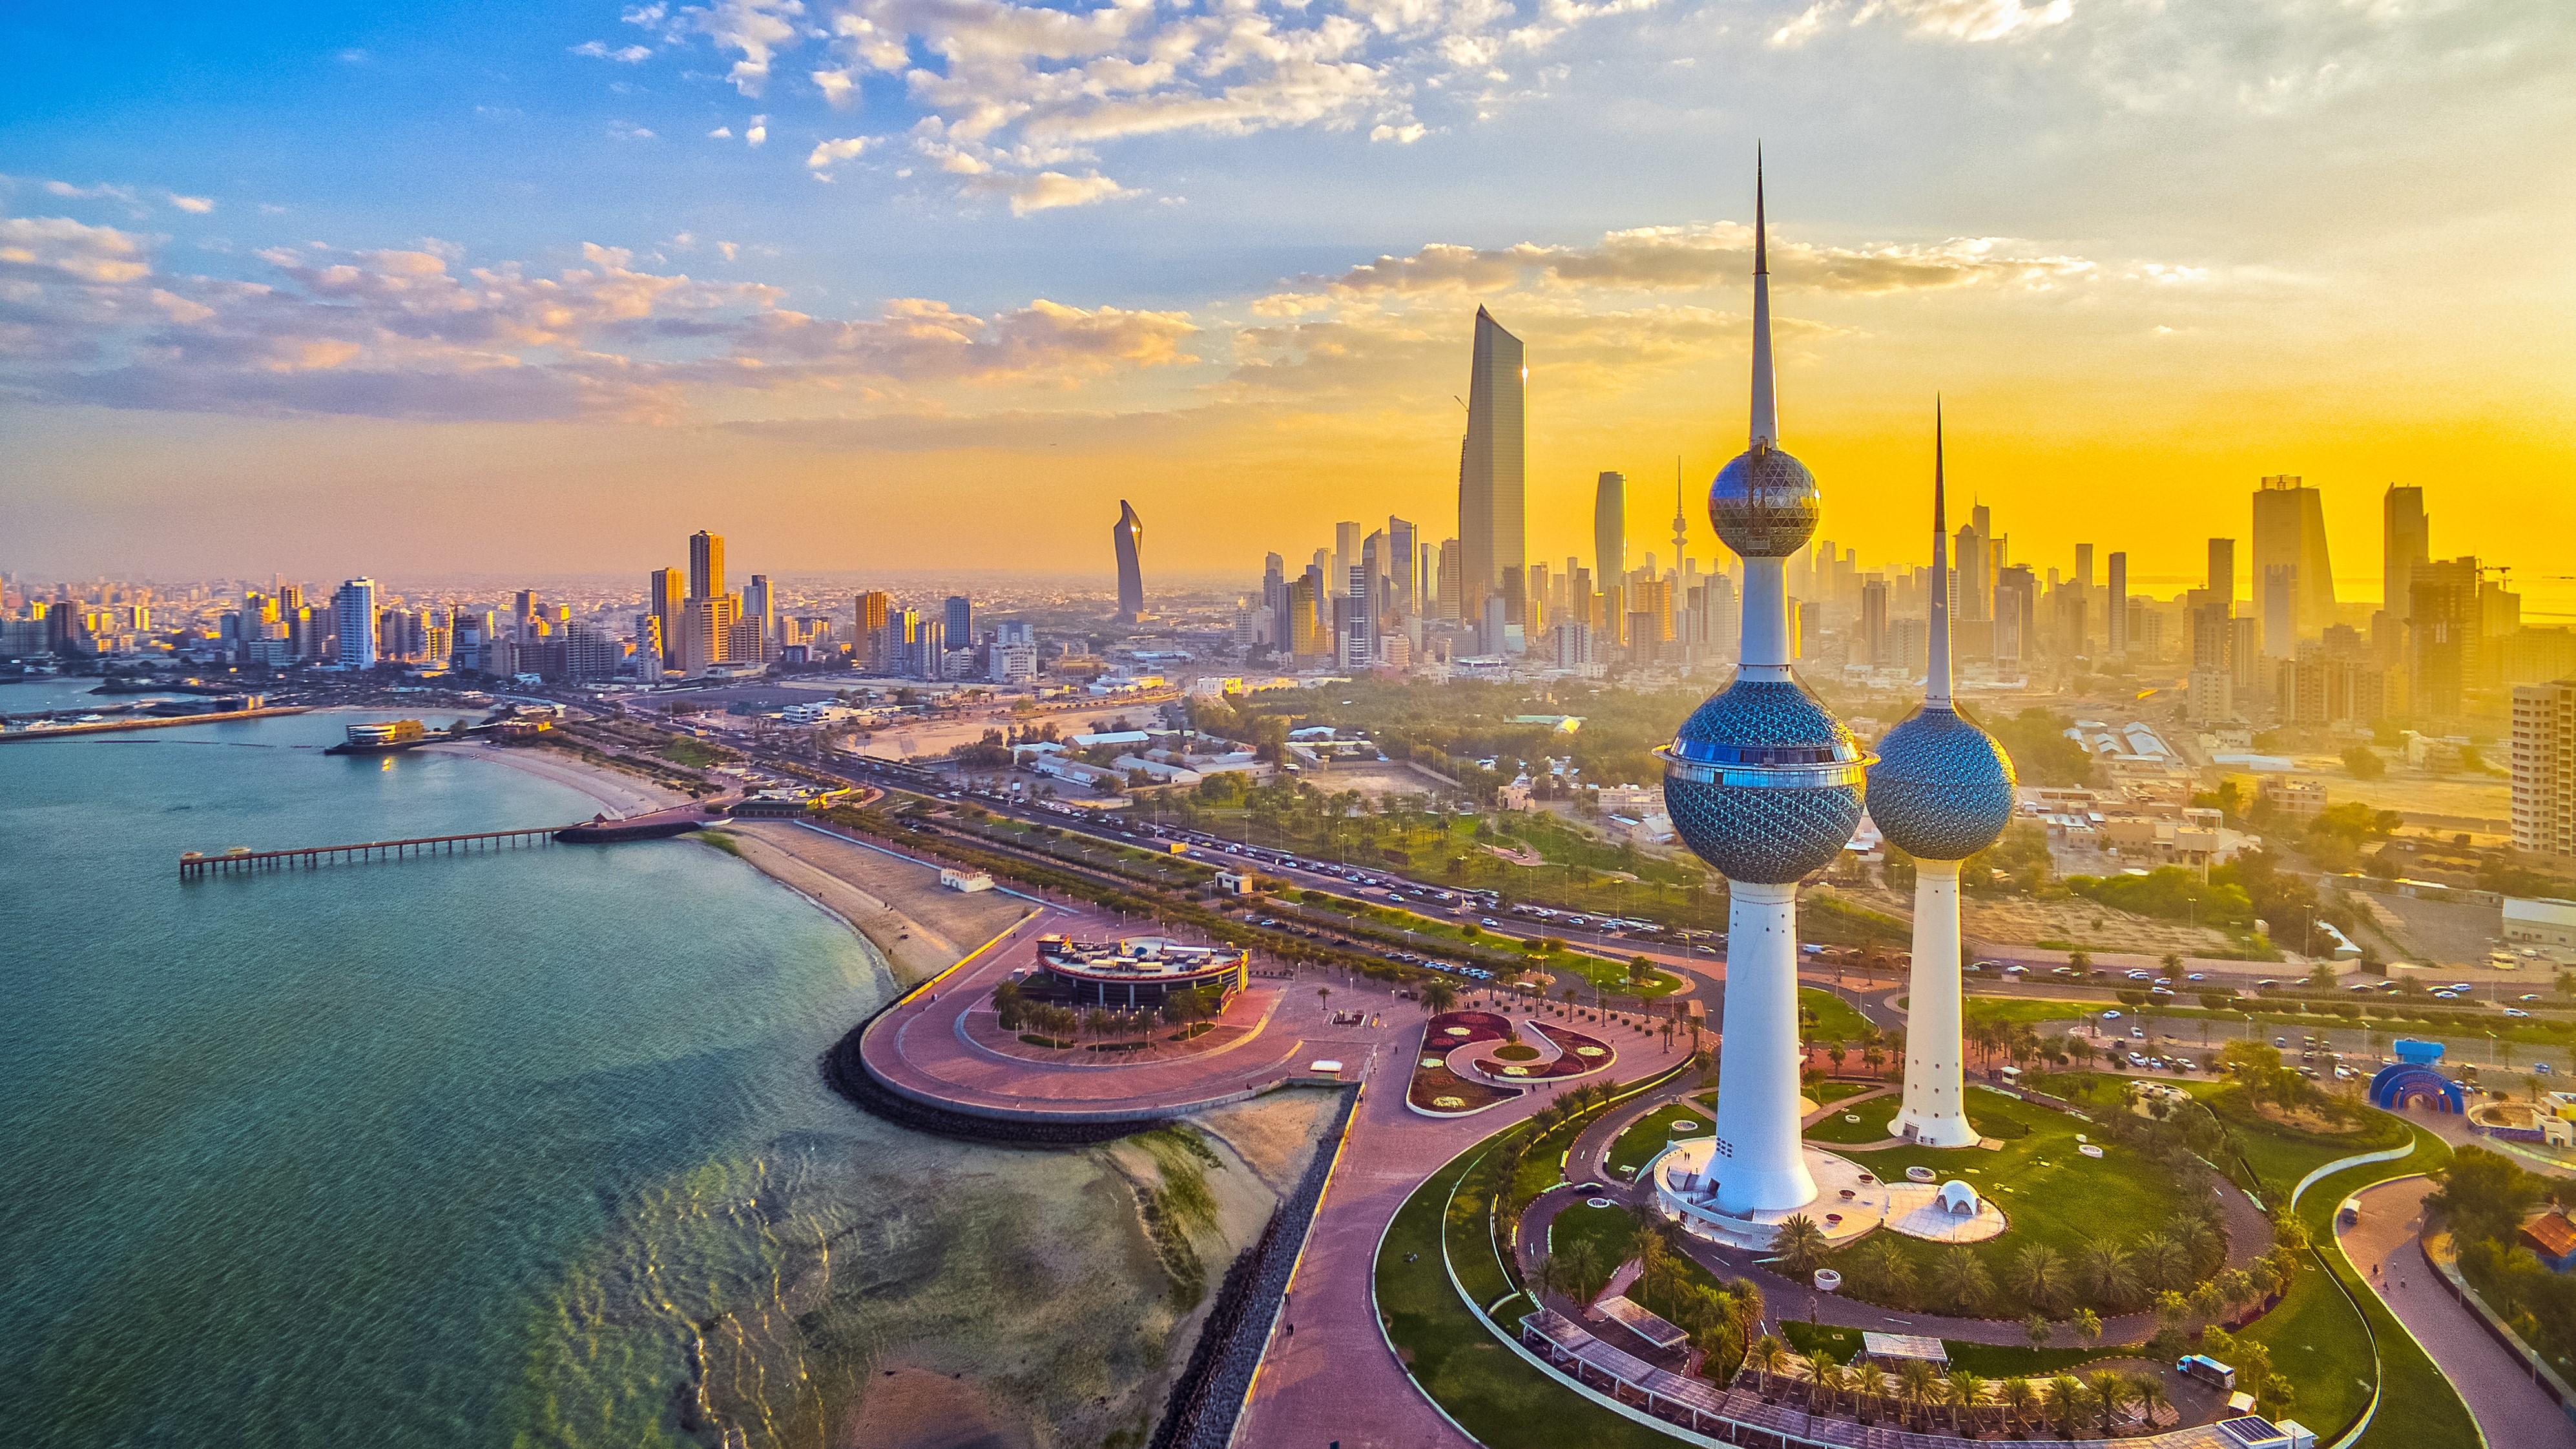 The Atlas Logistic Network is linking Kuwait City, Kuwait to the world 1